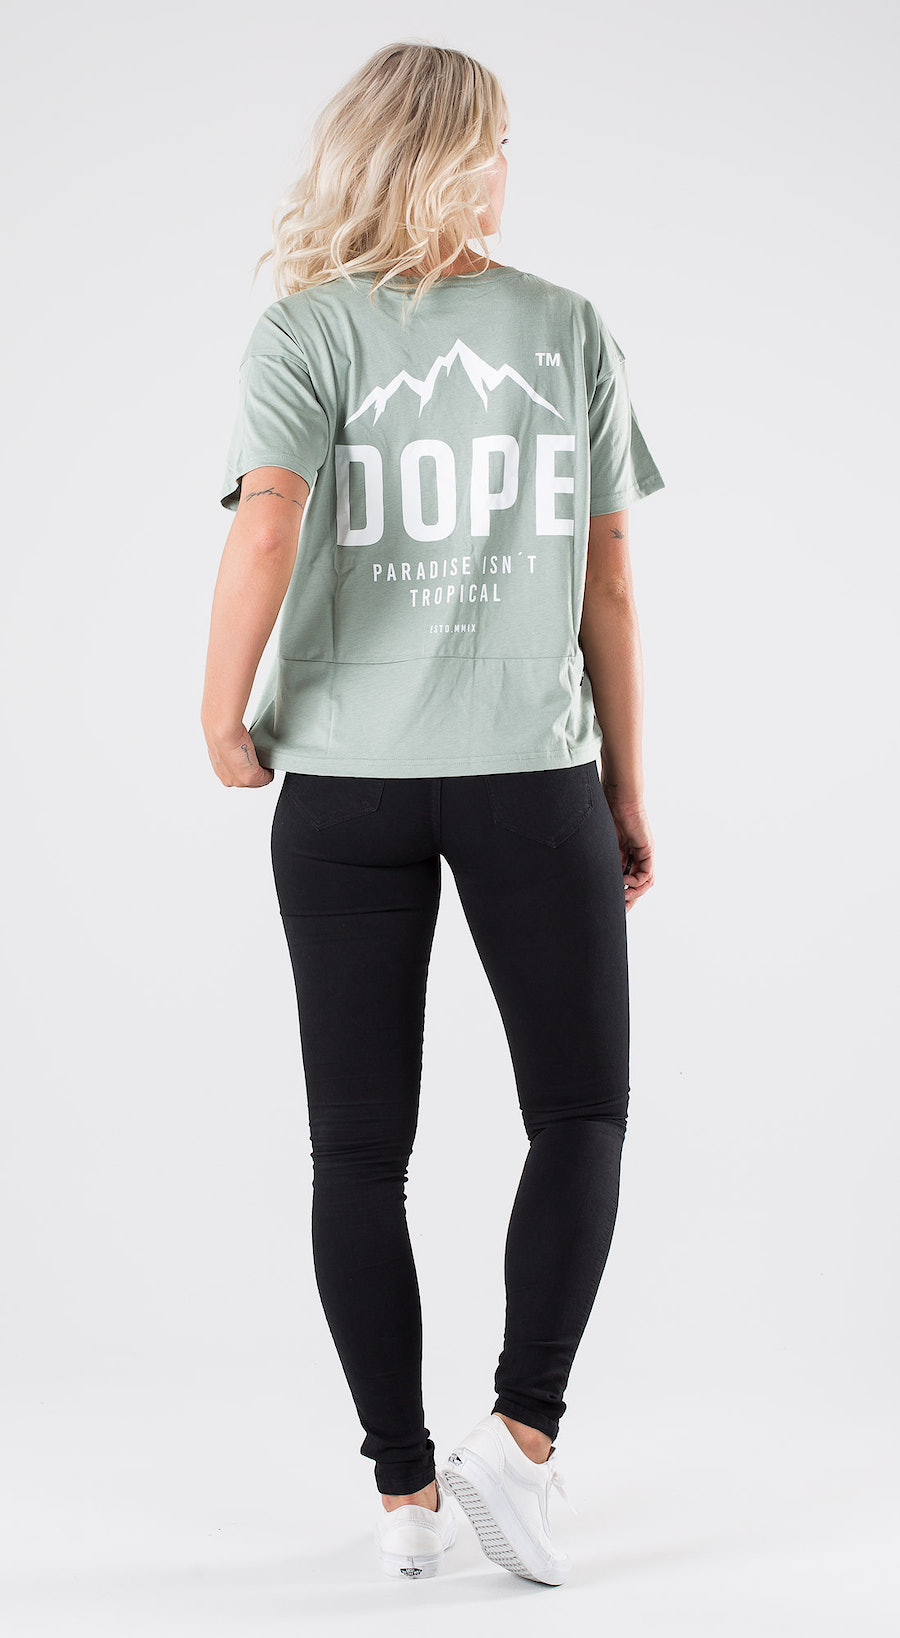 Dope Grand Paradise II Faded Green Outfit Multi